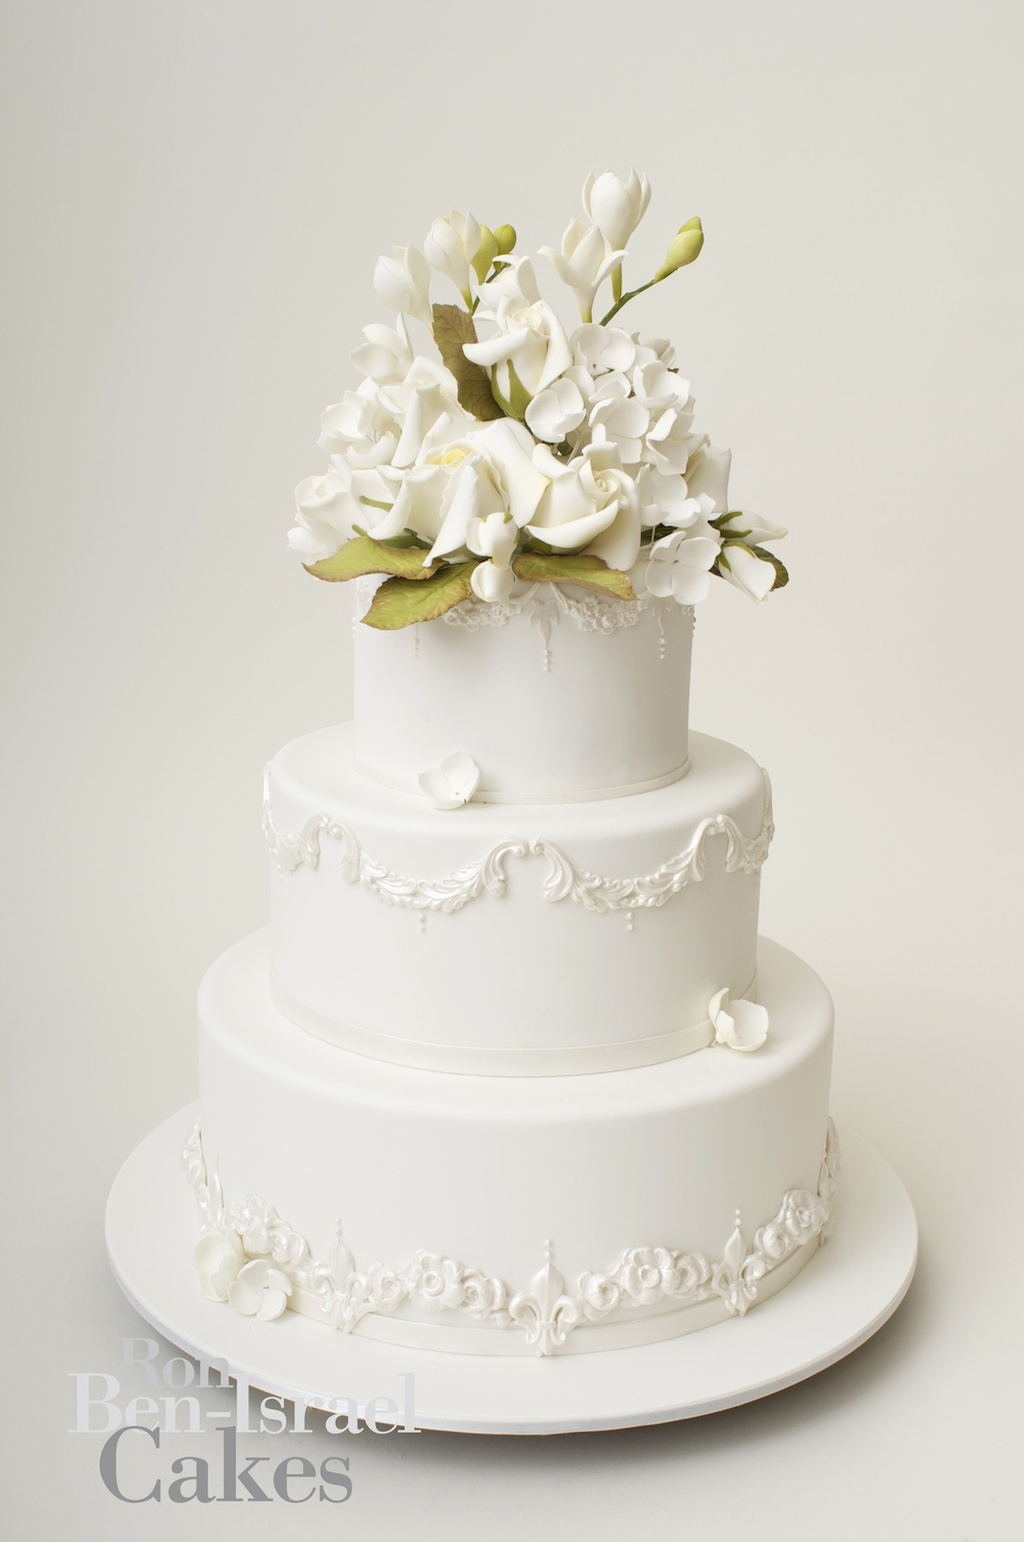 Wedding-cake-inspiration-ron-ben-isreal-wedding-cakes-classic-white-3-tier.original.full